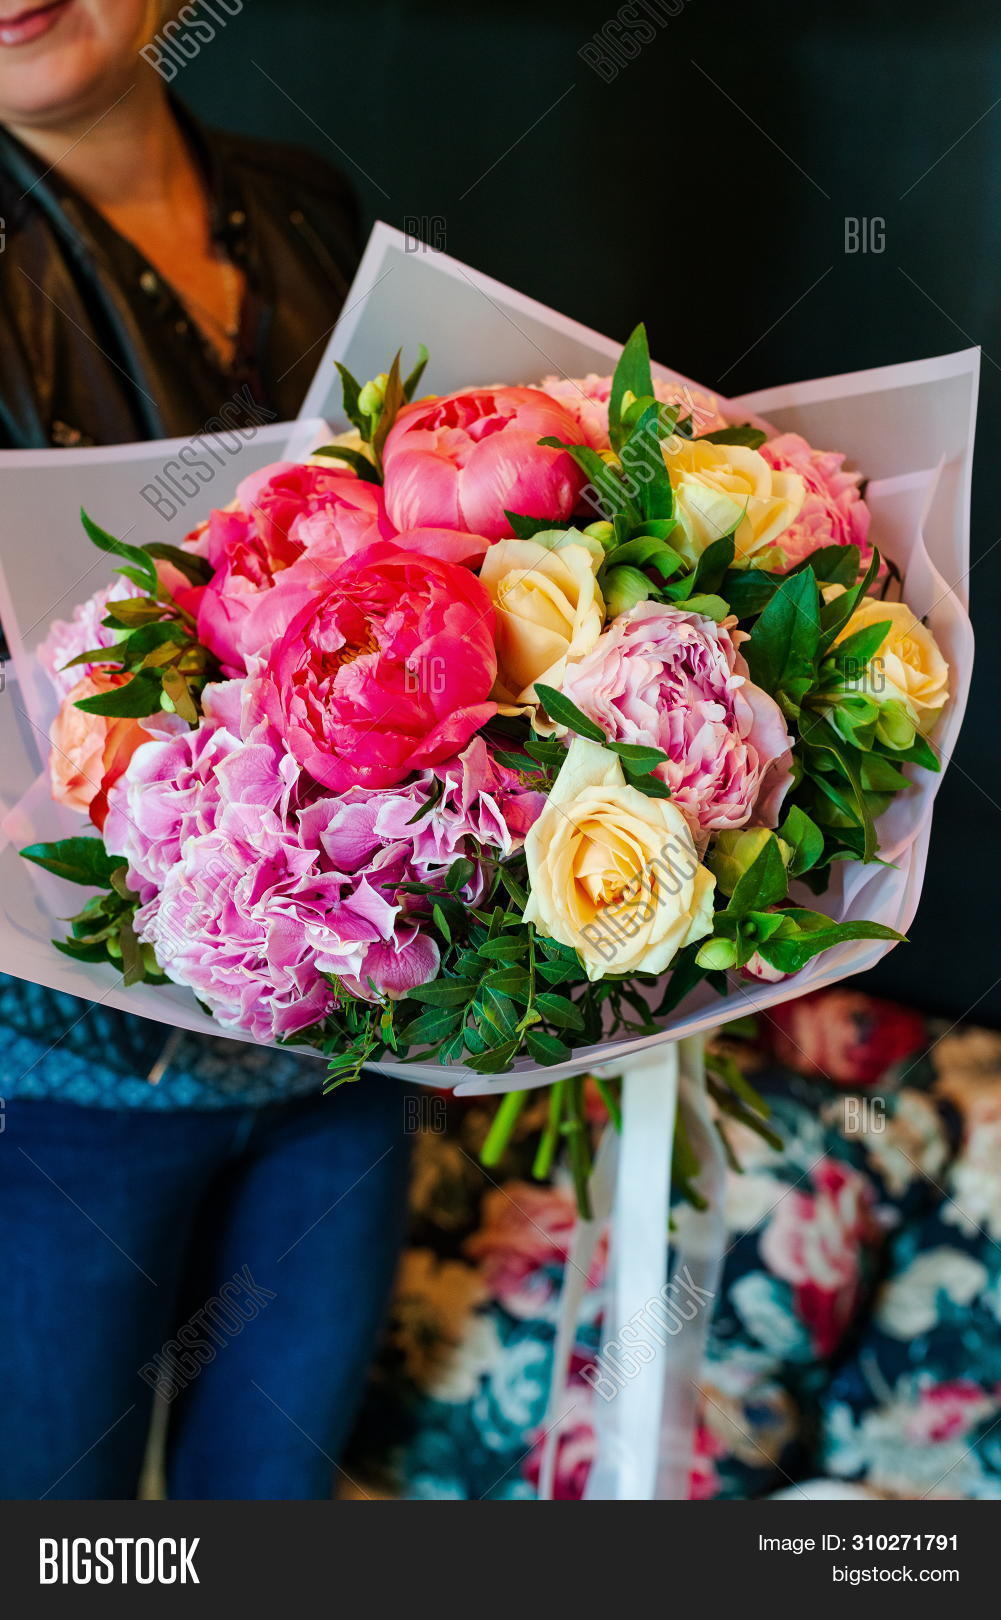 Most Beautiful Bouquet Image Photo Free Trial Bigstock